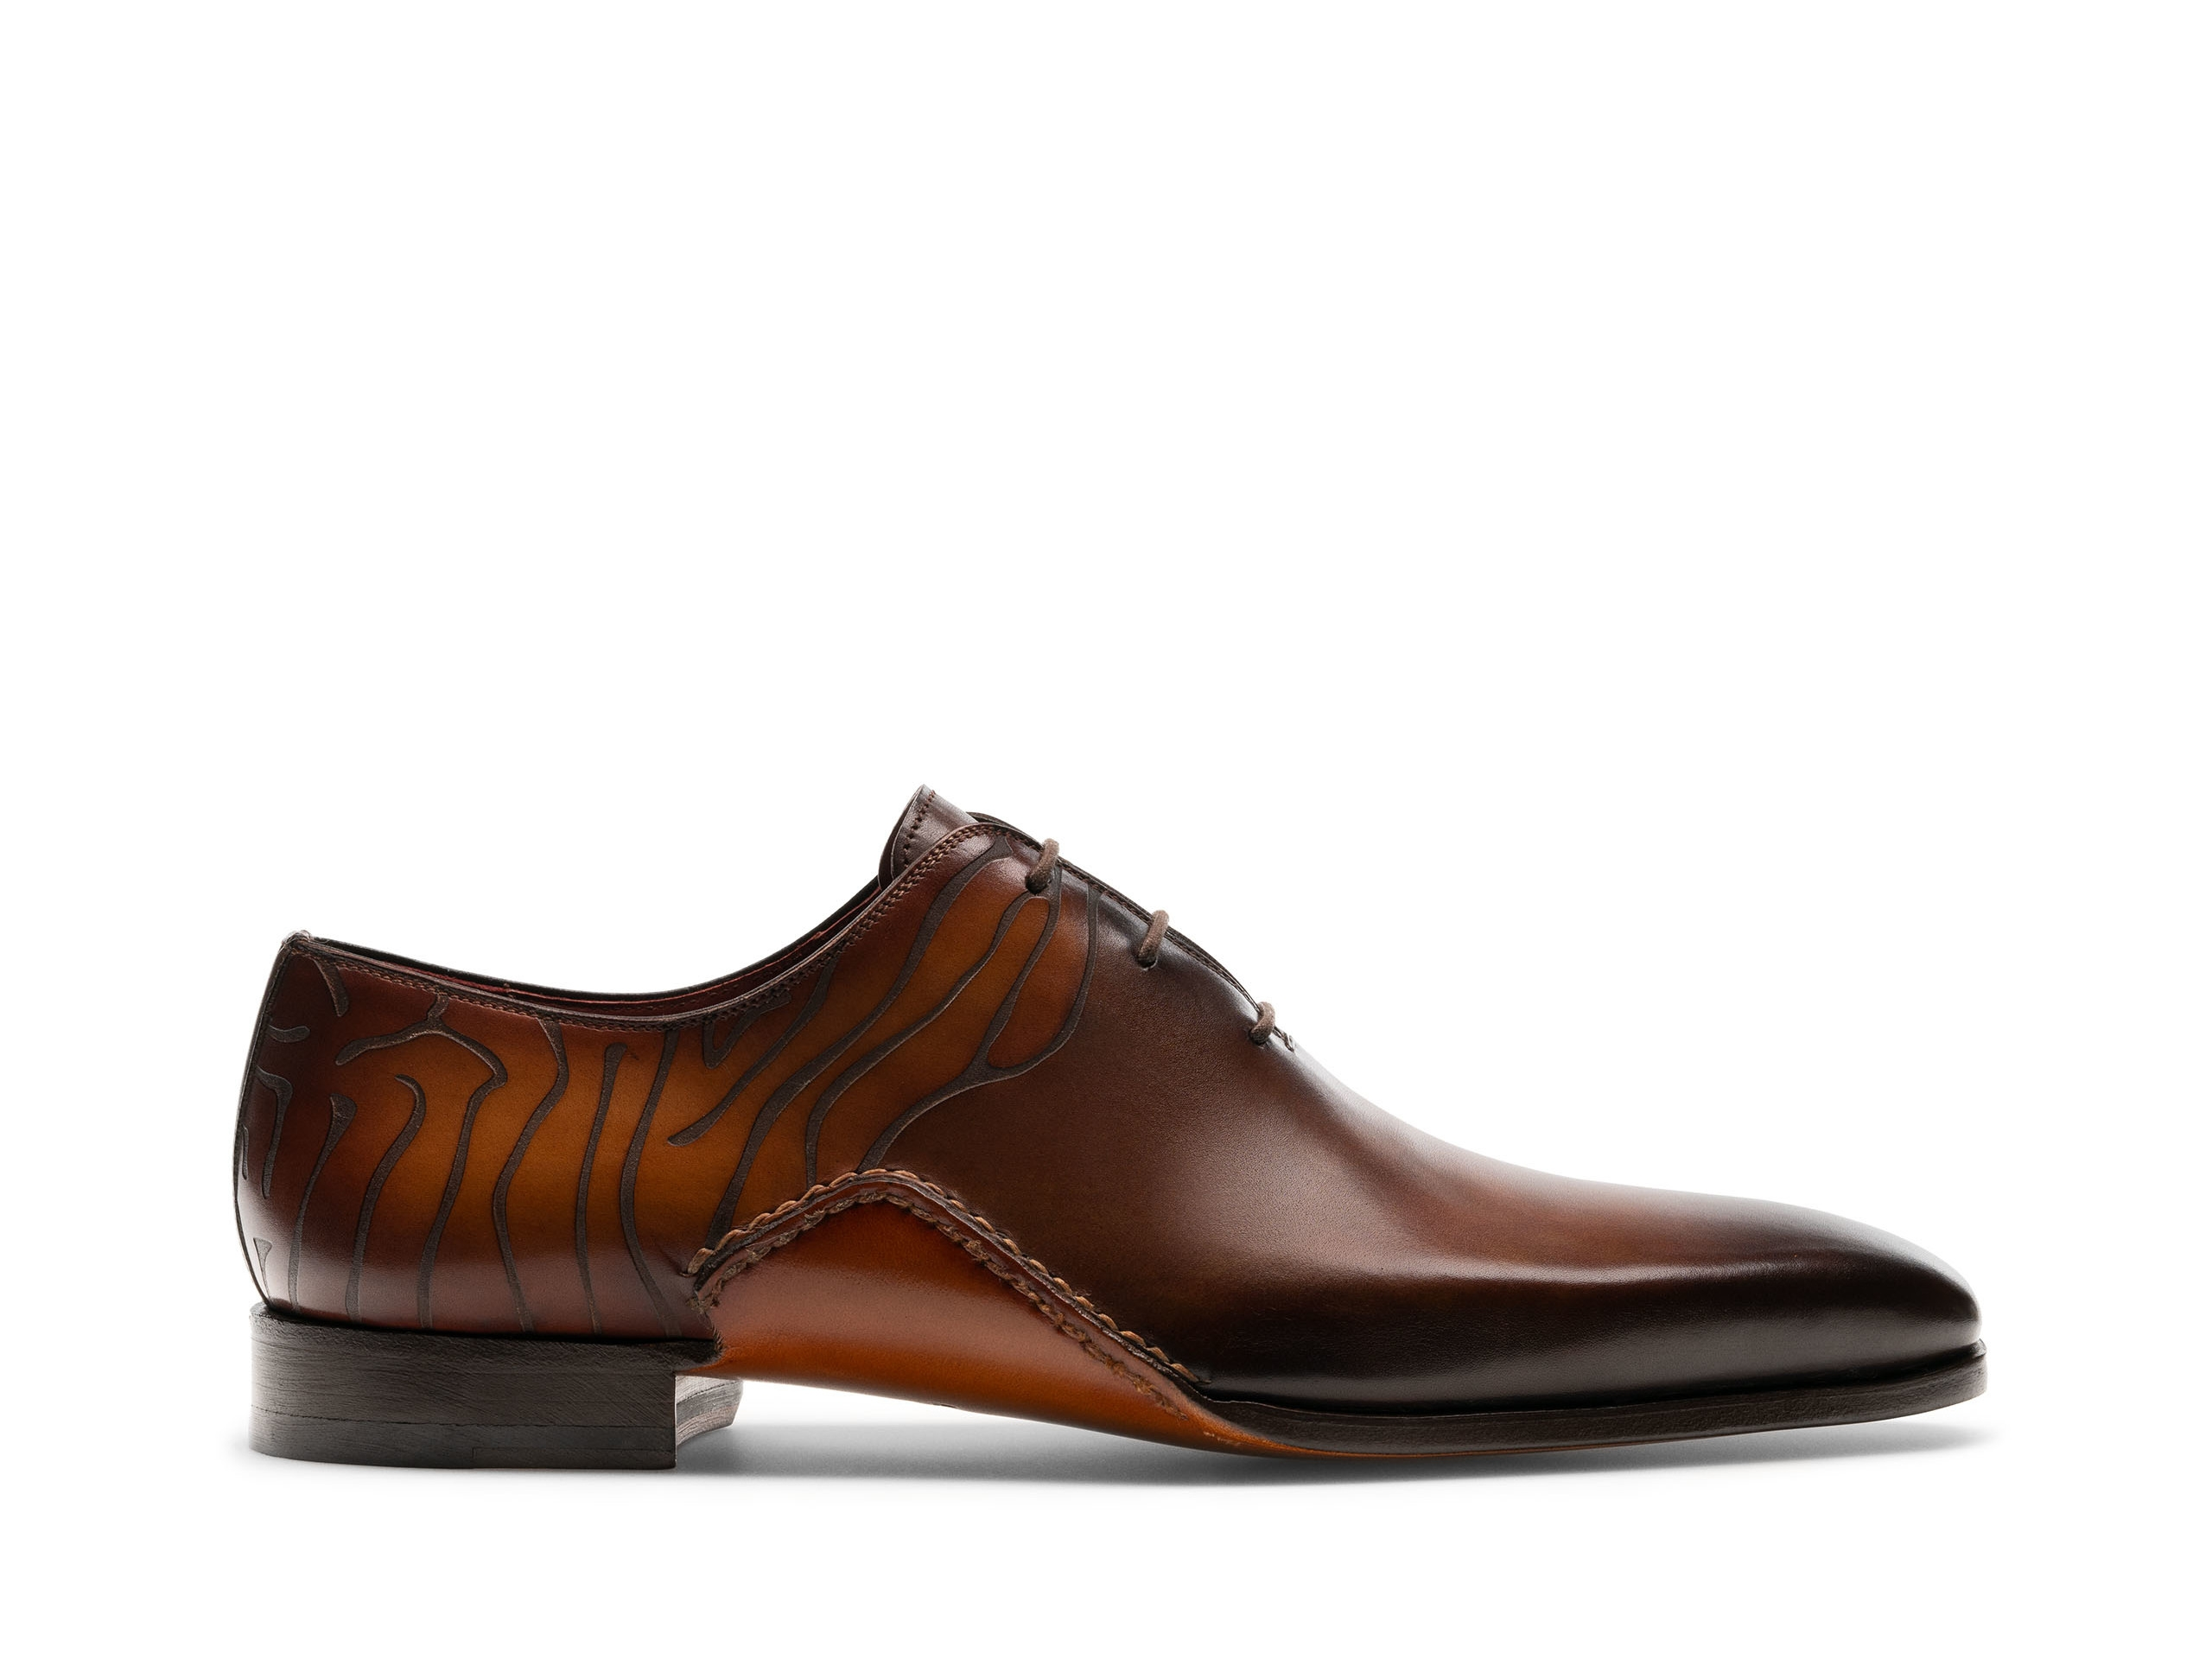 Tasos Tabaco and Cuero lace up dress shoes Side Profile